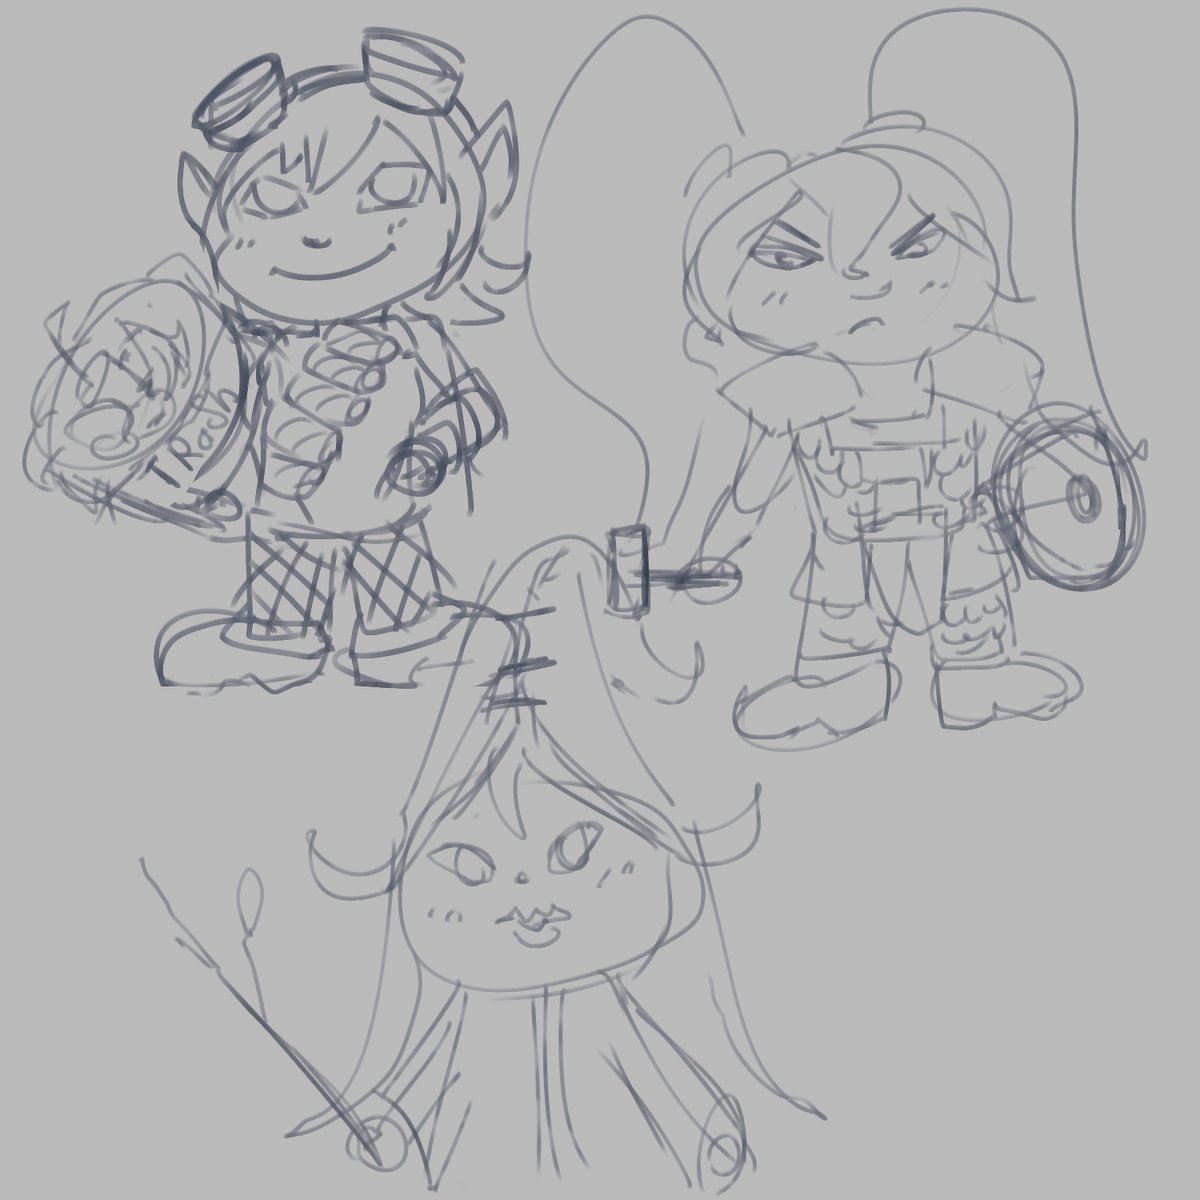 working on some yordle stuff on stream come watch if ya want